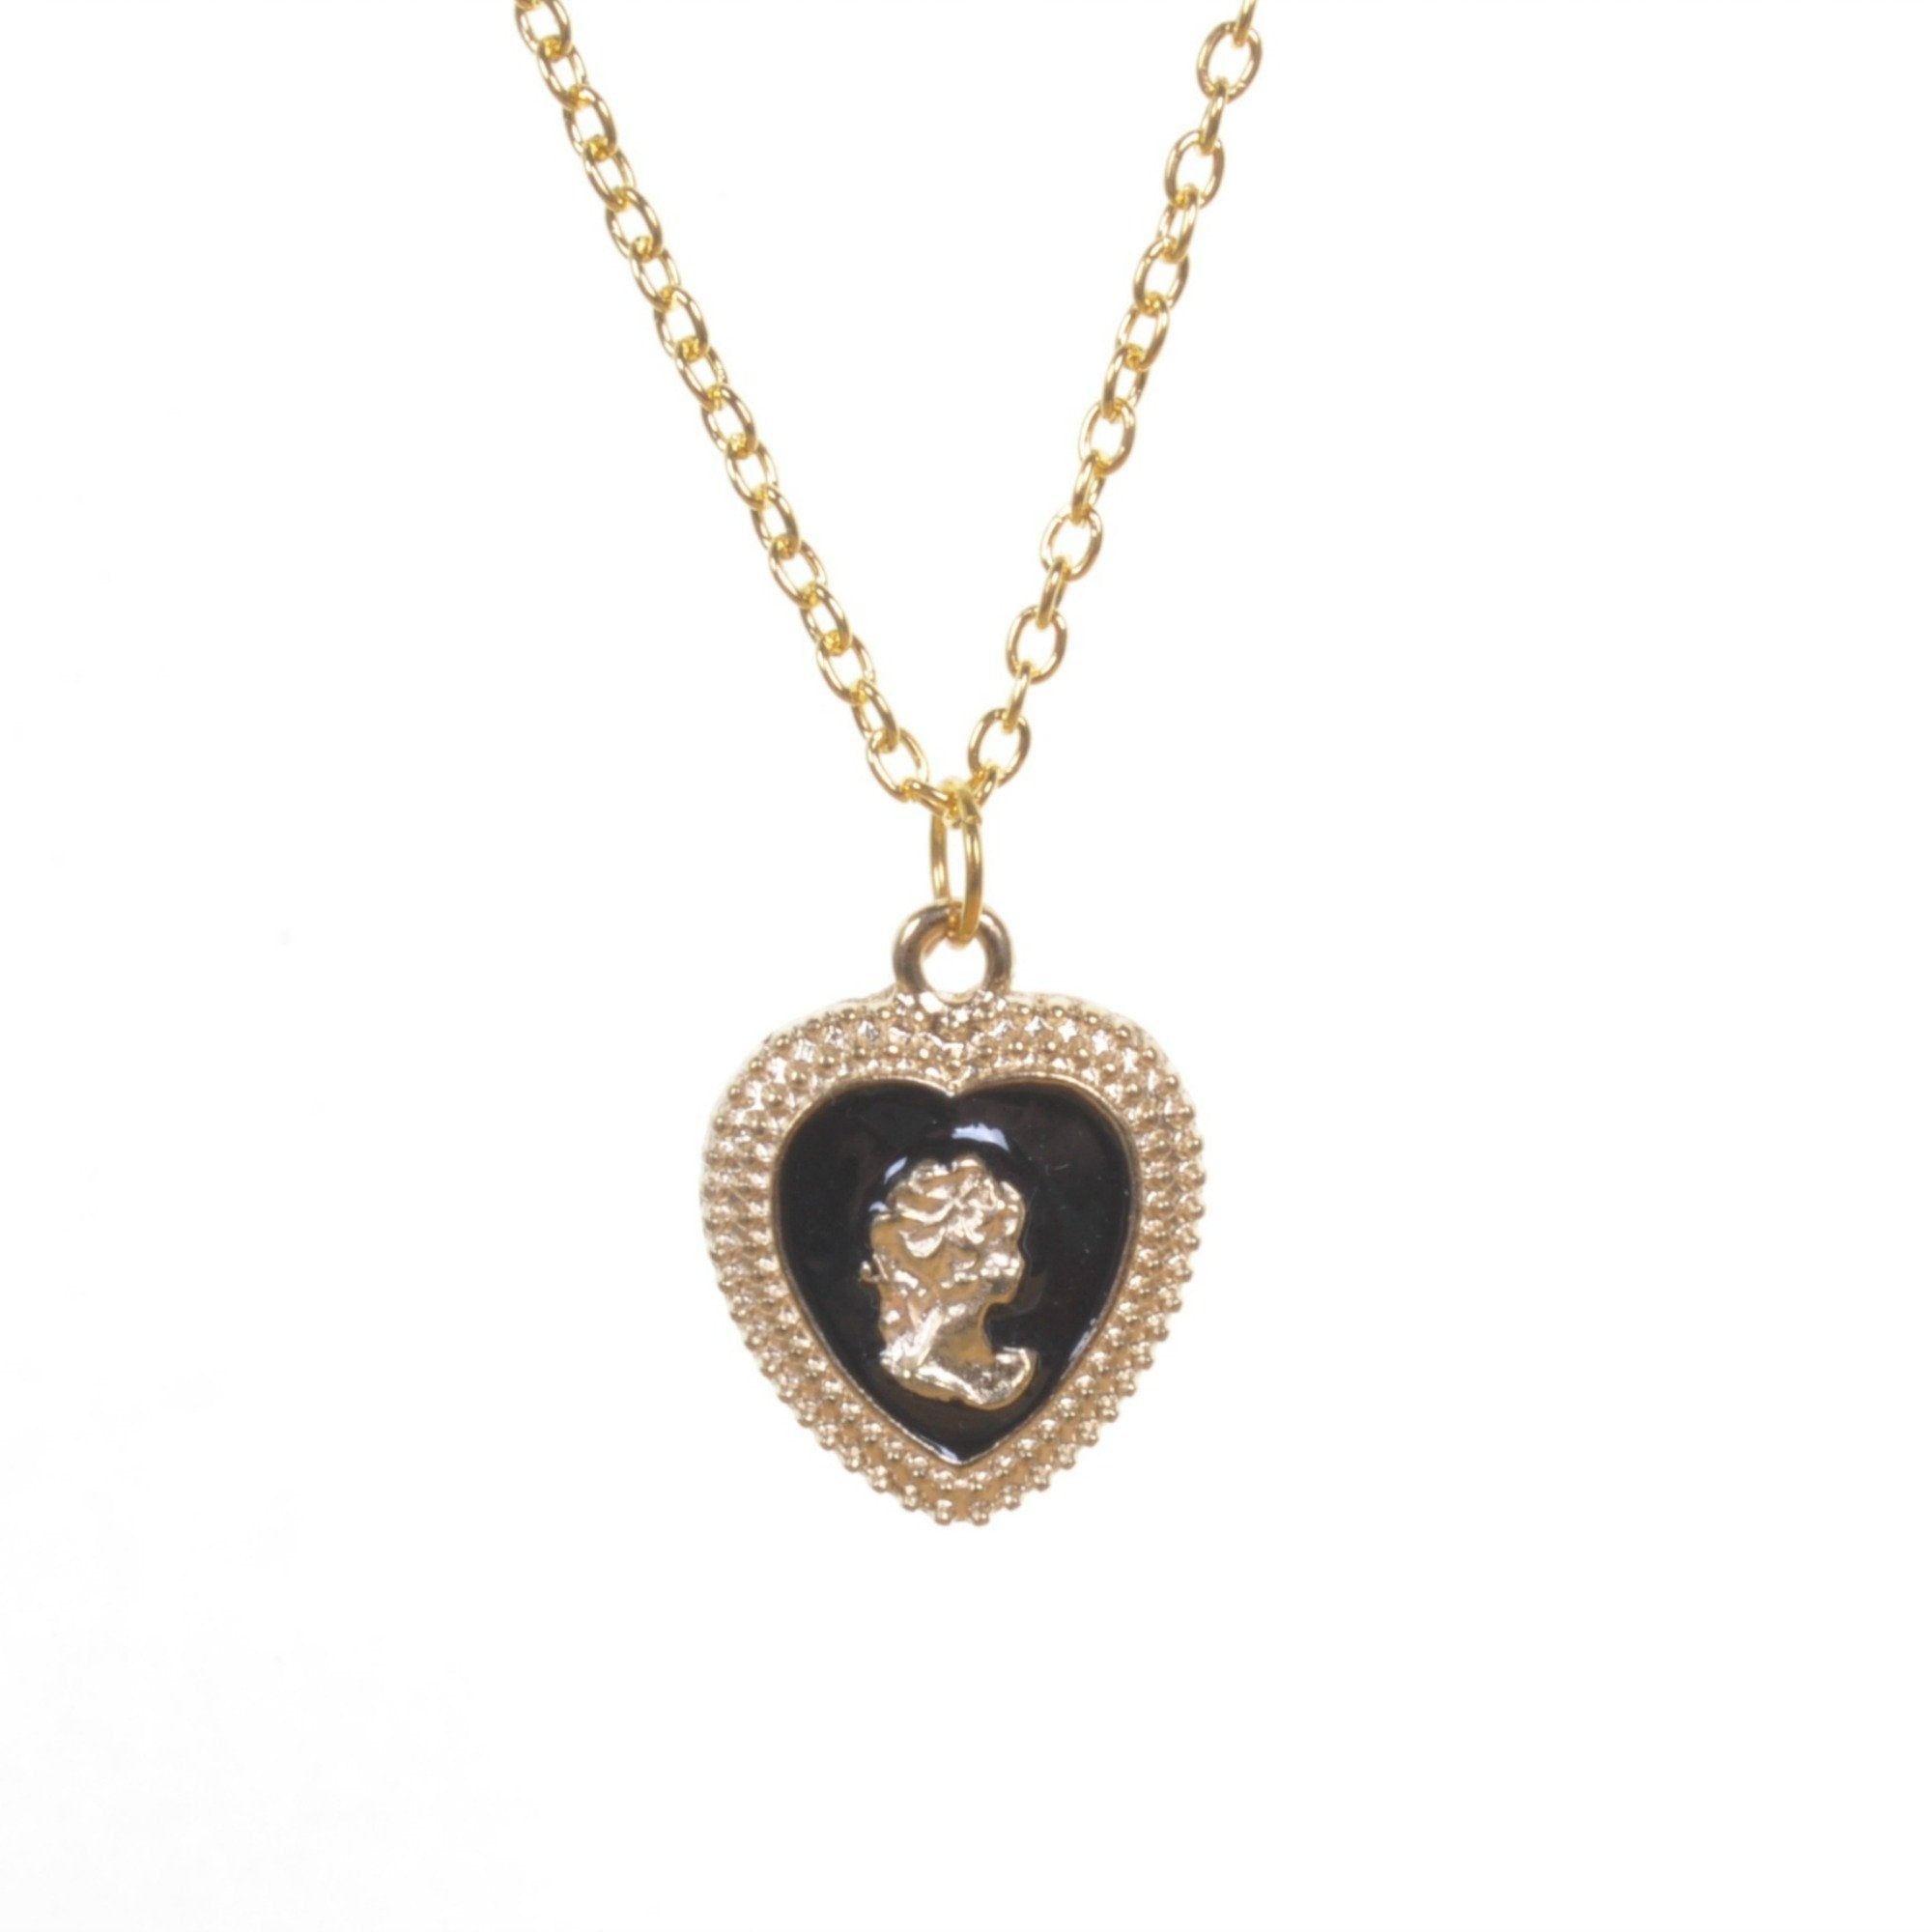 Gold Black Heart Cameo Pendant Necklace - Minimum Mouse